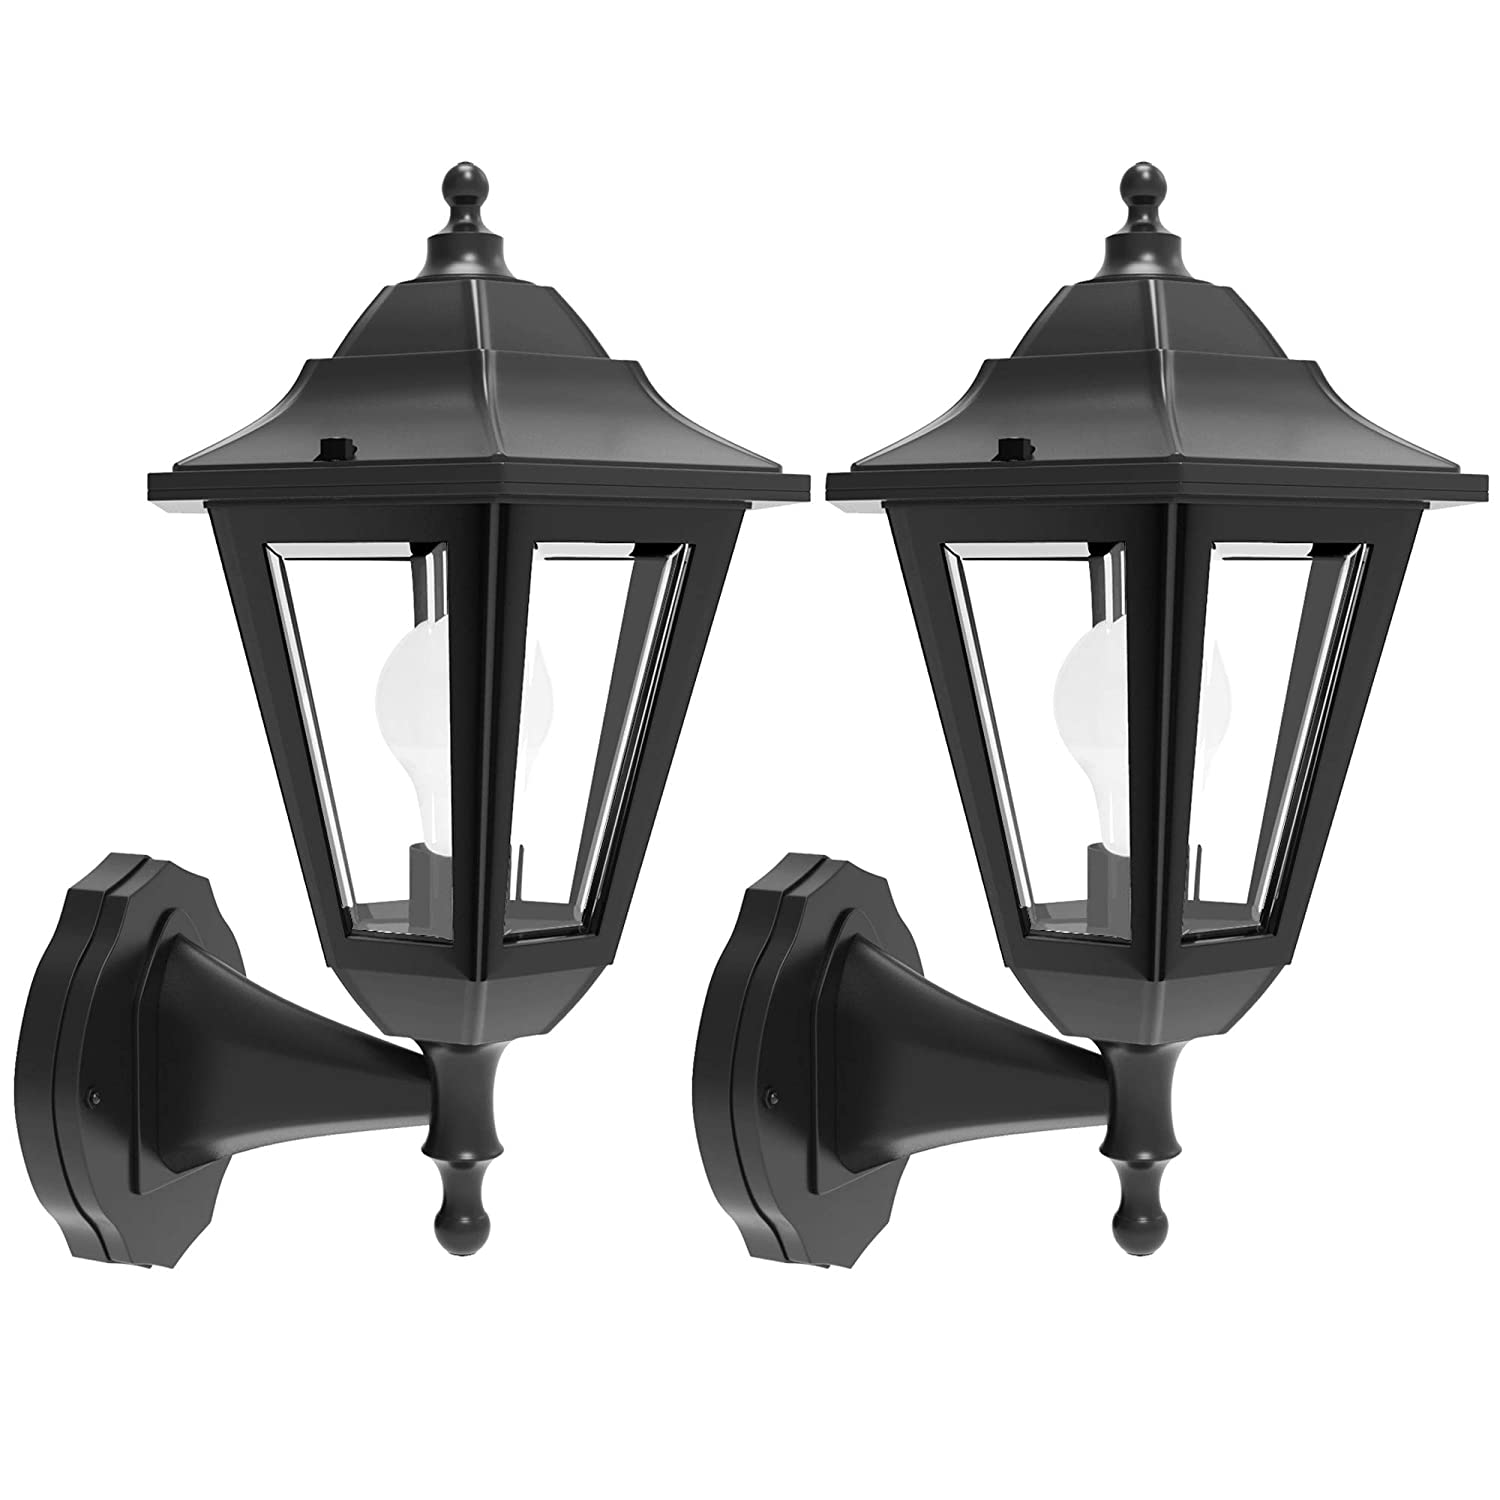 Emart porch light fixtures outdoor led waterproof wall lantern durable plastic material black finish exterior wall sconce lamp for garden carriage